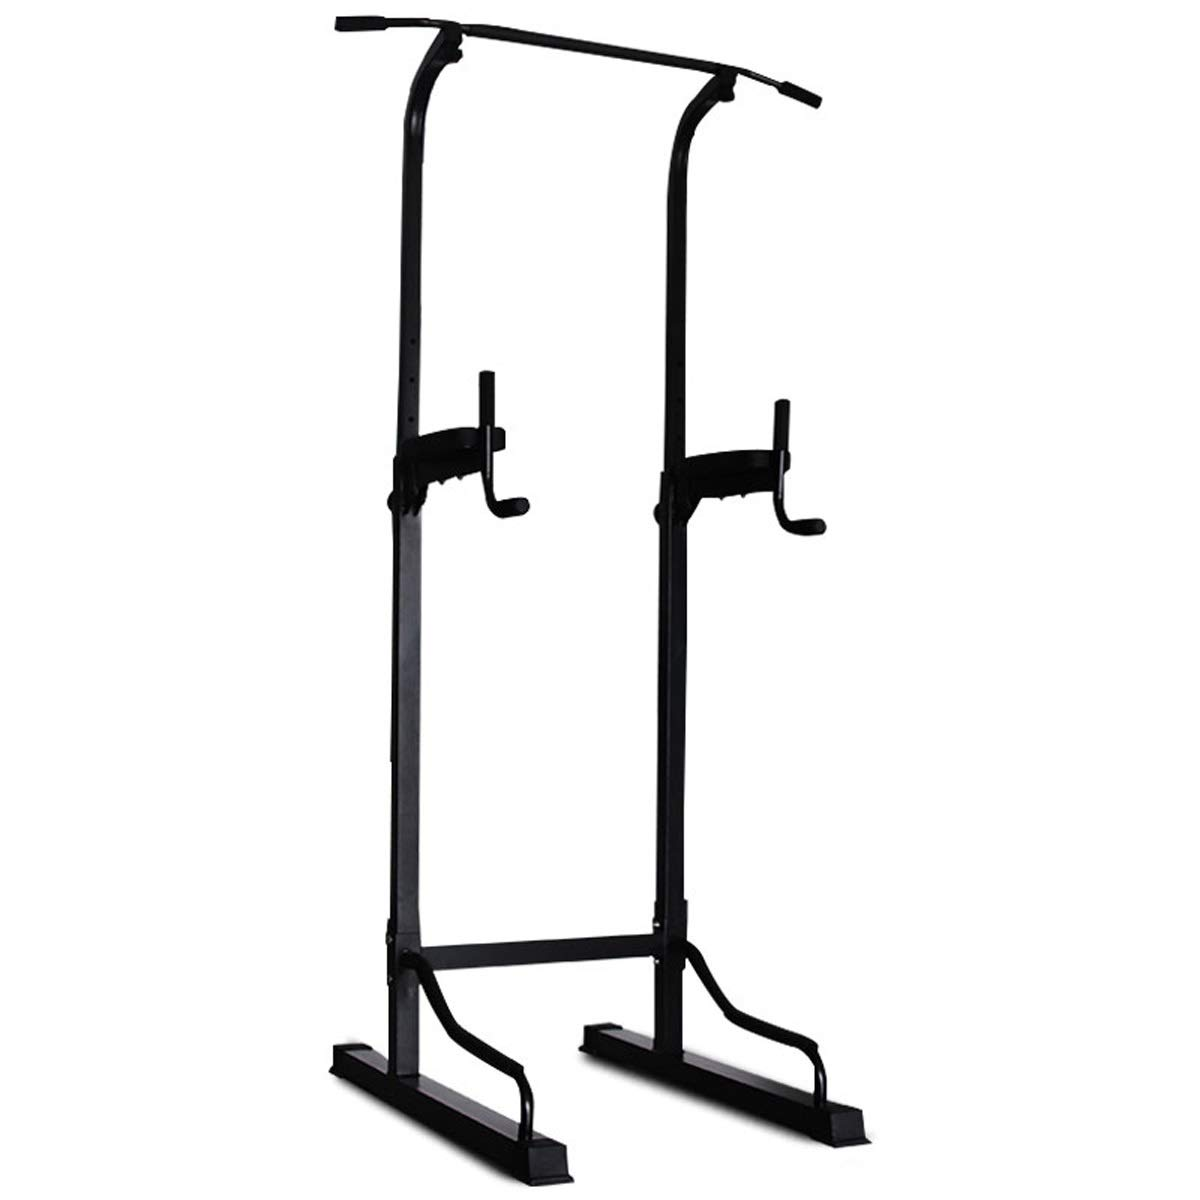 Indoor Horizontal Bar Home Pull-up Frame Roller Sports Sporting Goods Auxiliary Fitness Equipment Free Punching by Baianju